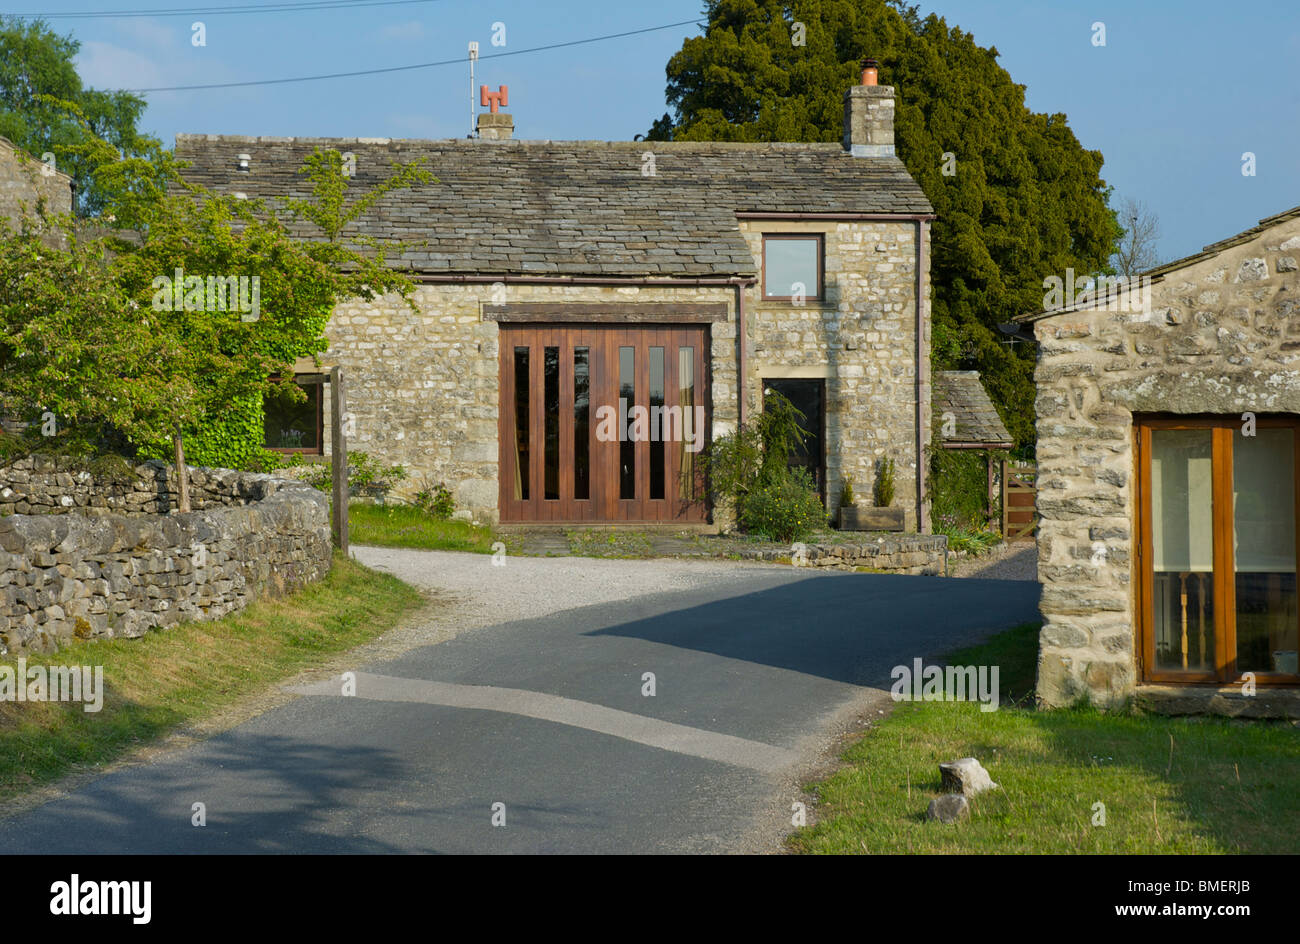 Barn Conversions In The Village Of Hawkswick, Littondale, Yorkshire Dales  National Park, North